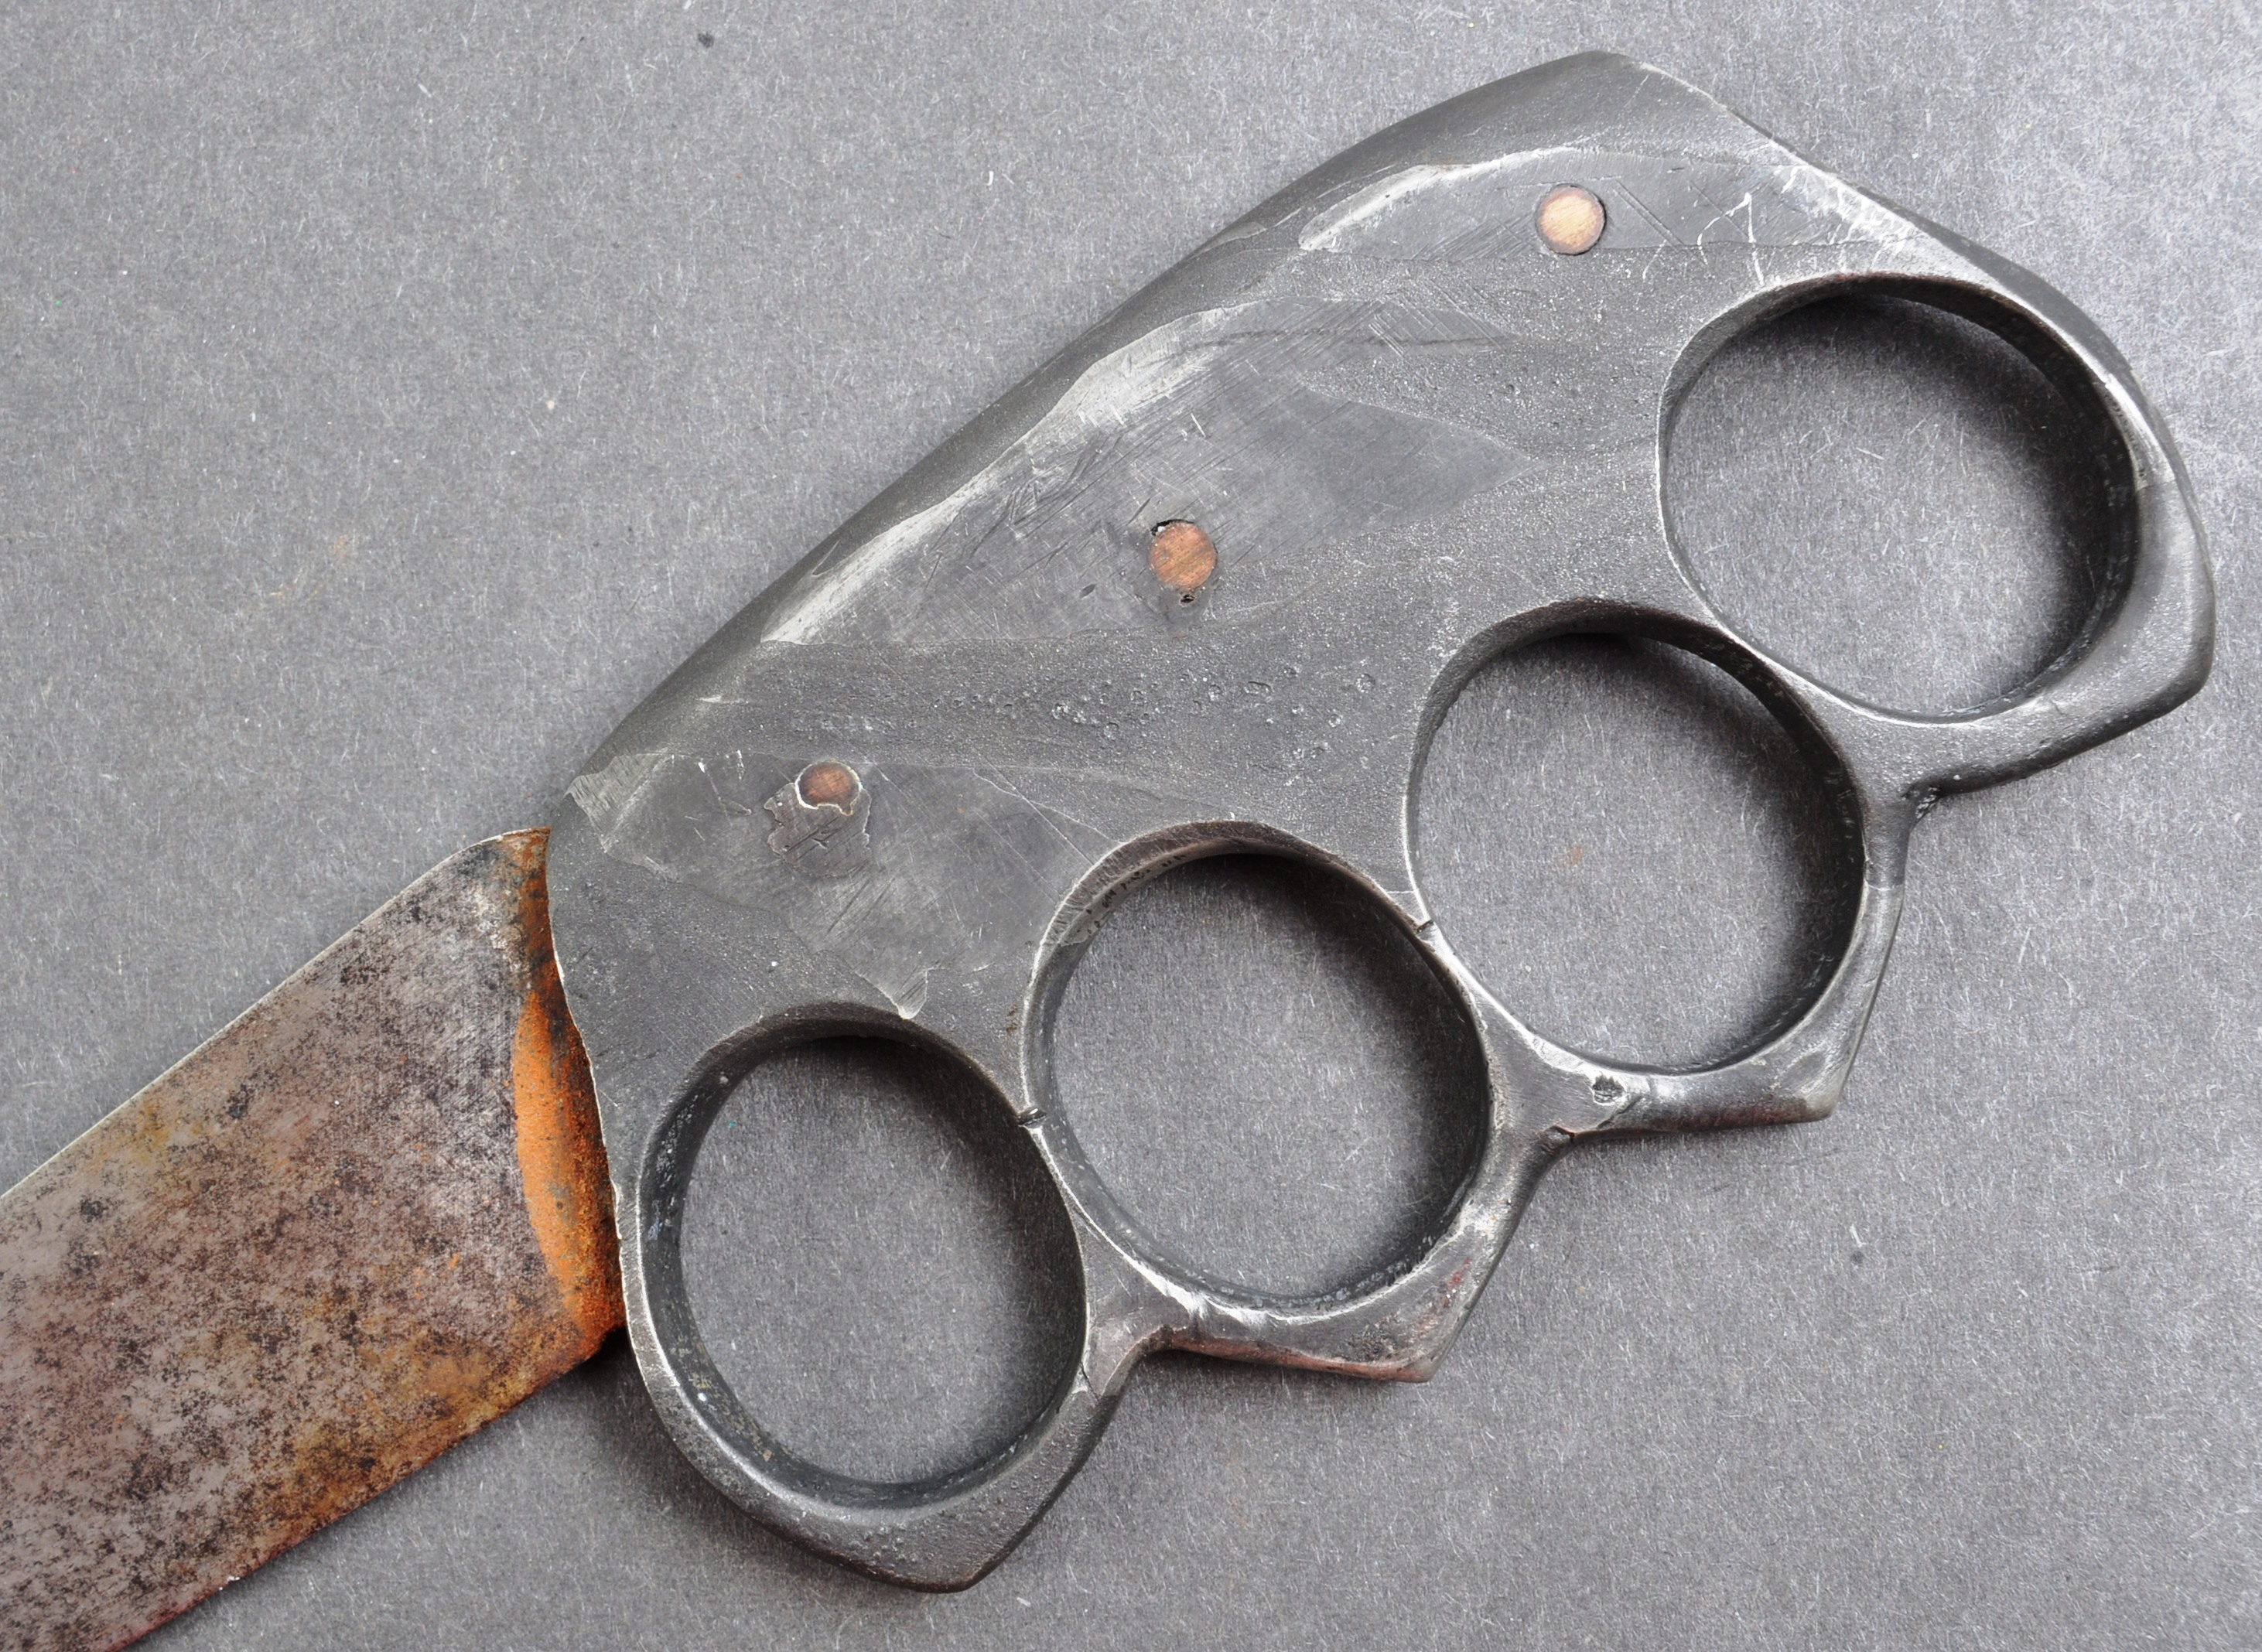 RARE WWI FIRST WORLD WAR TRENCH WARFARE KNUCKLEDUSTER KNIFE - Image 4 of 5